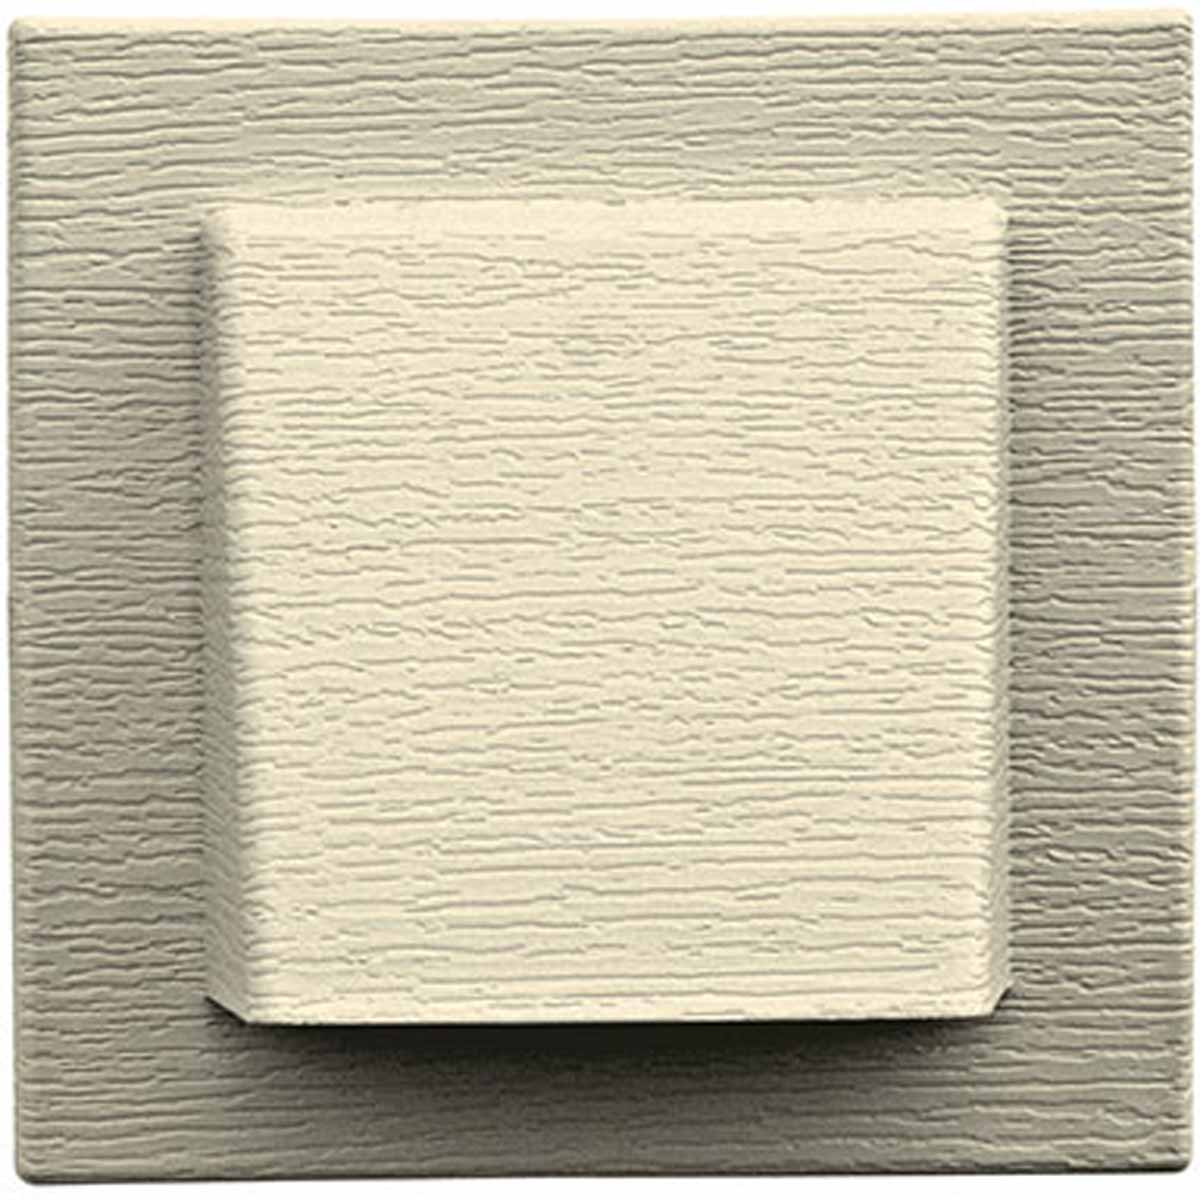 Mid america 00037805020 4 inch hooded vent with small anima for Fiber cement siding cost comparison